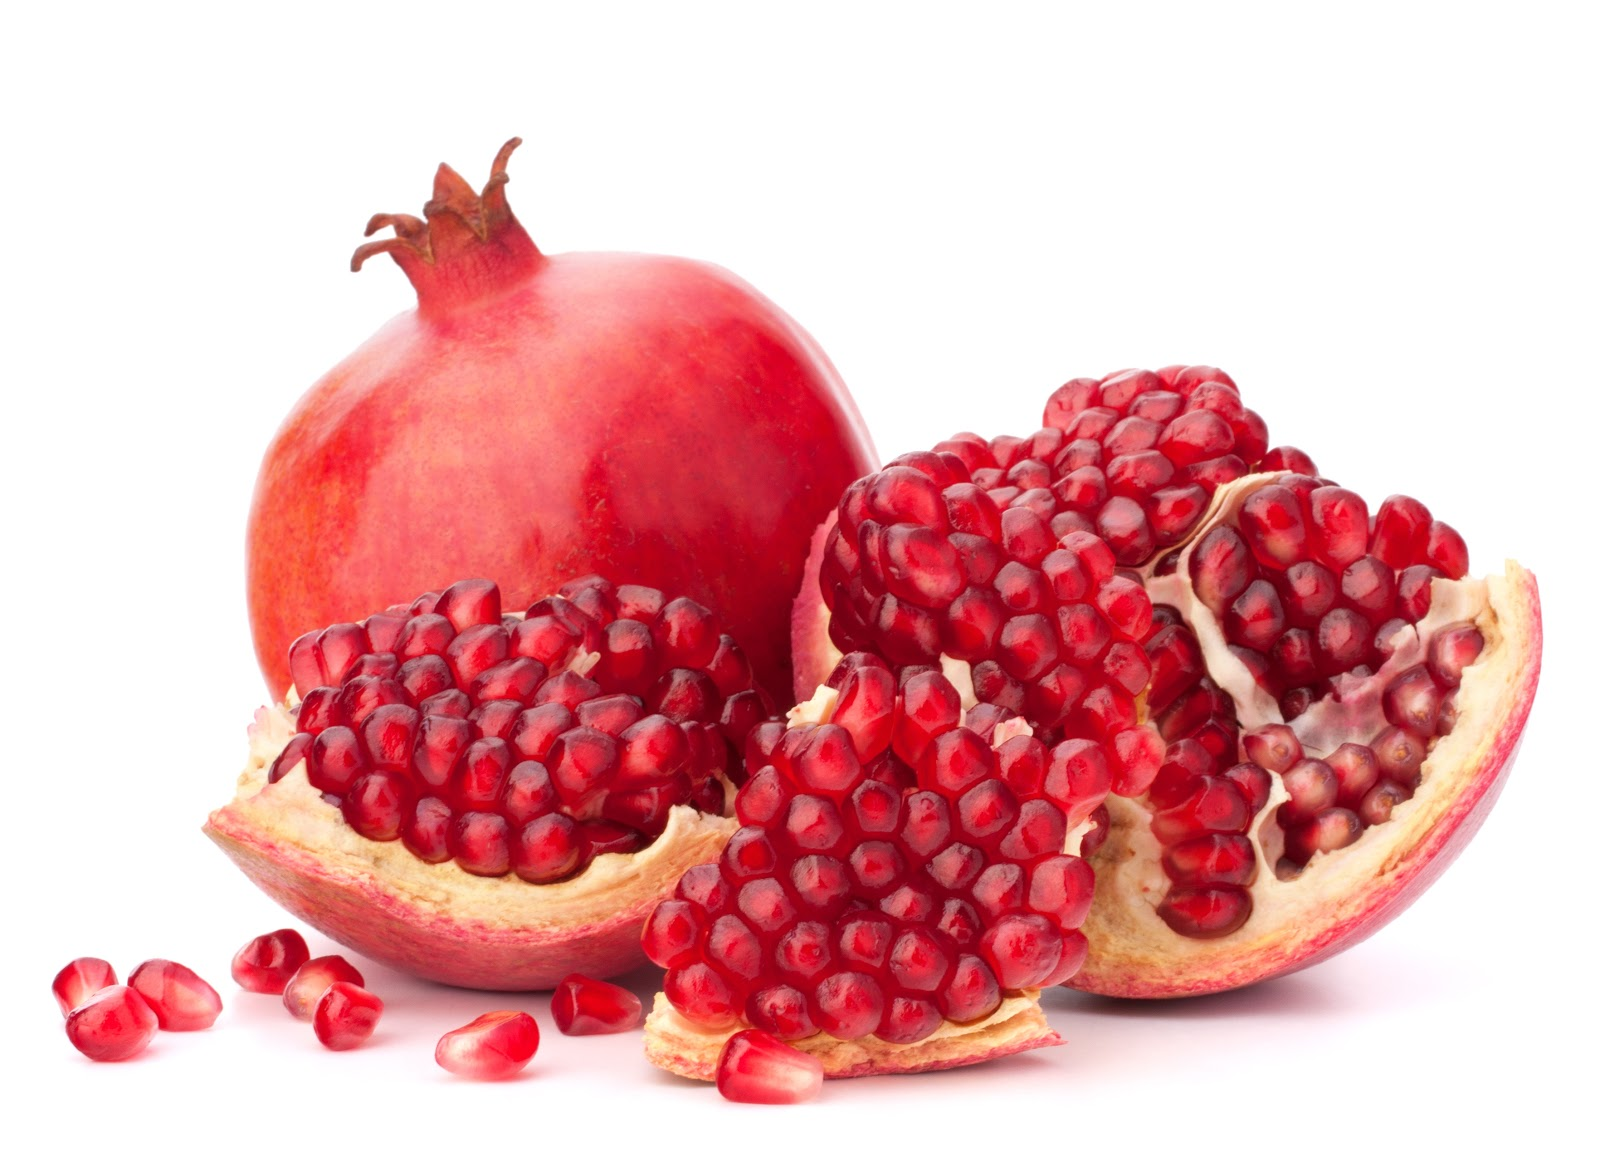 1600x1176 > Pomegranate Wallpapers